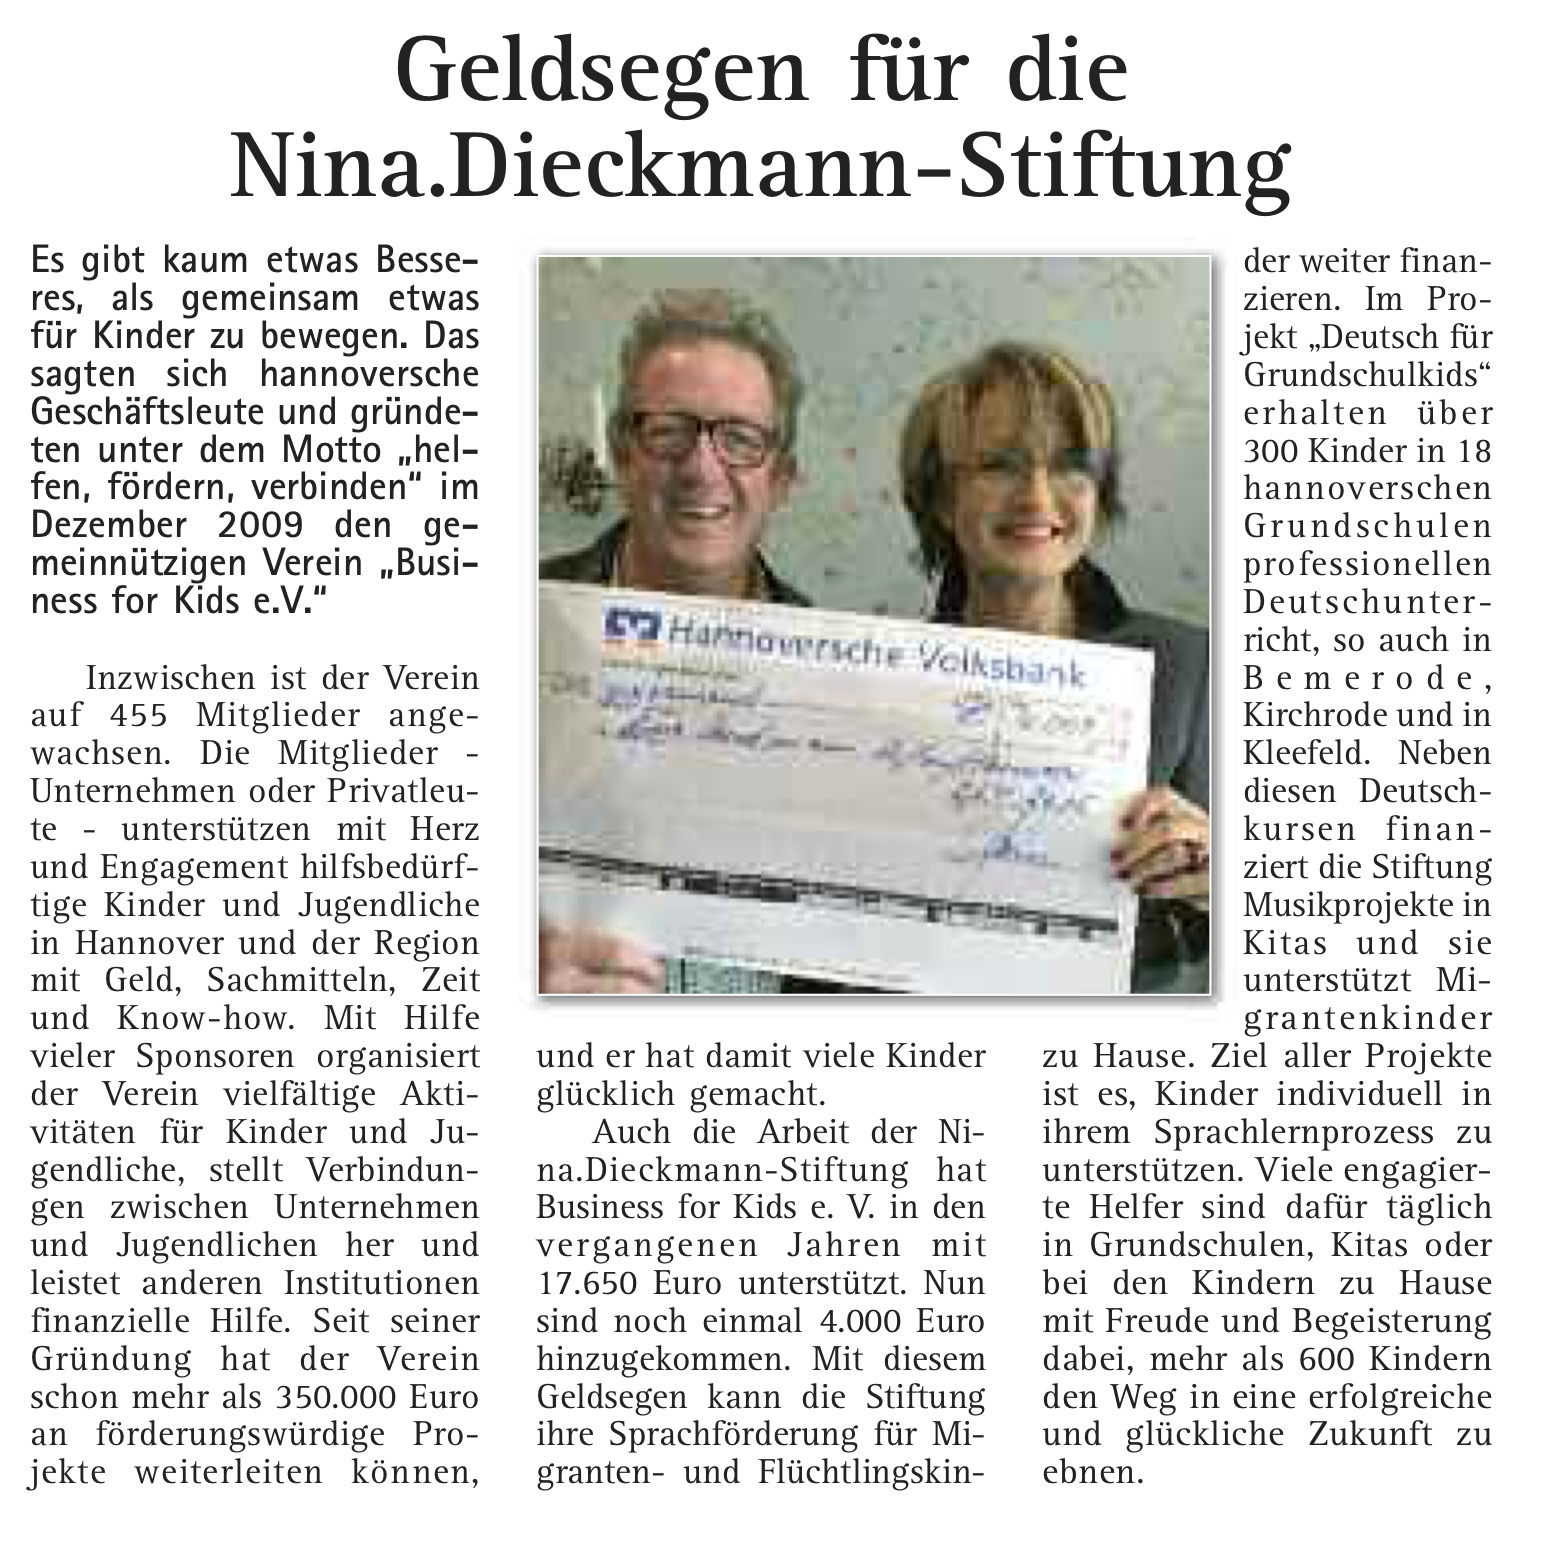 Nina Dieckmann Stiftung Business for Kids